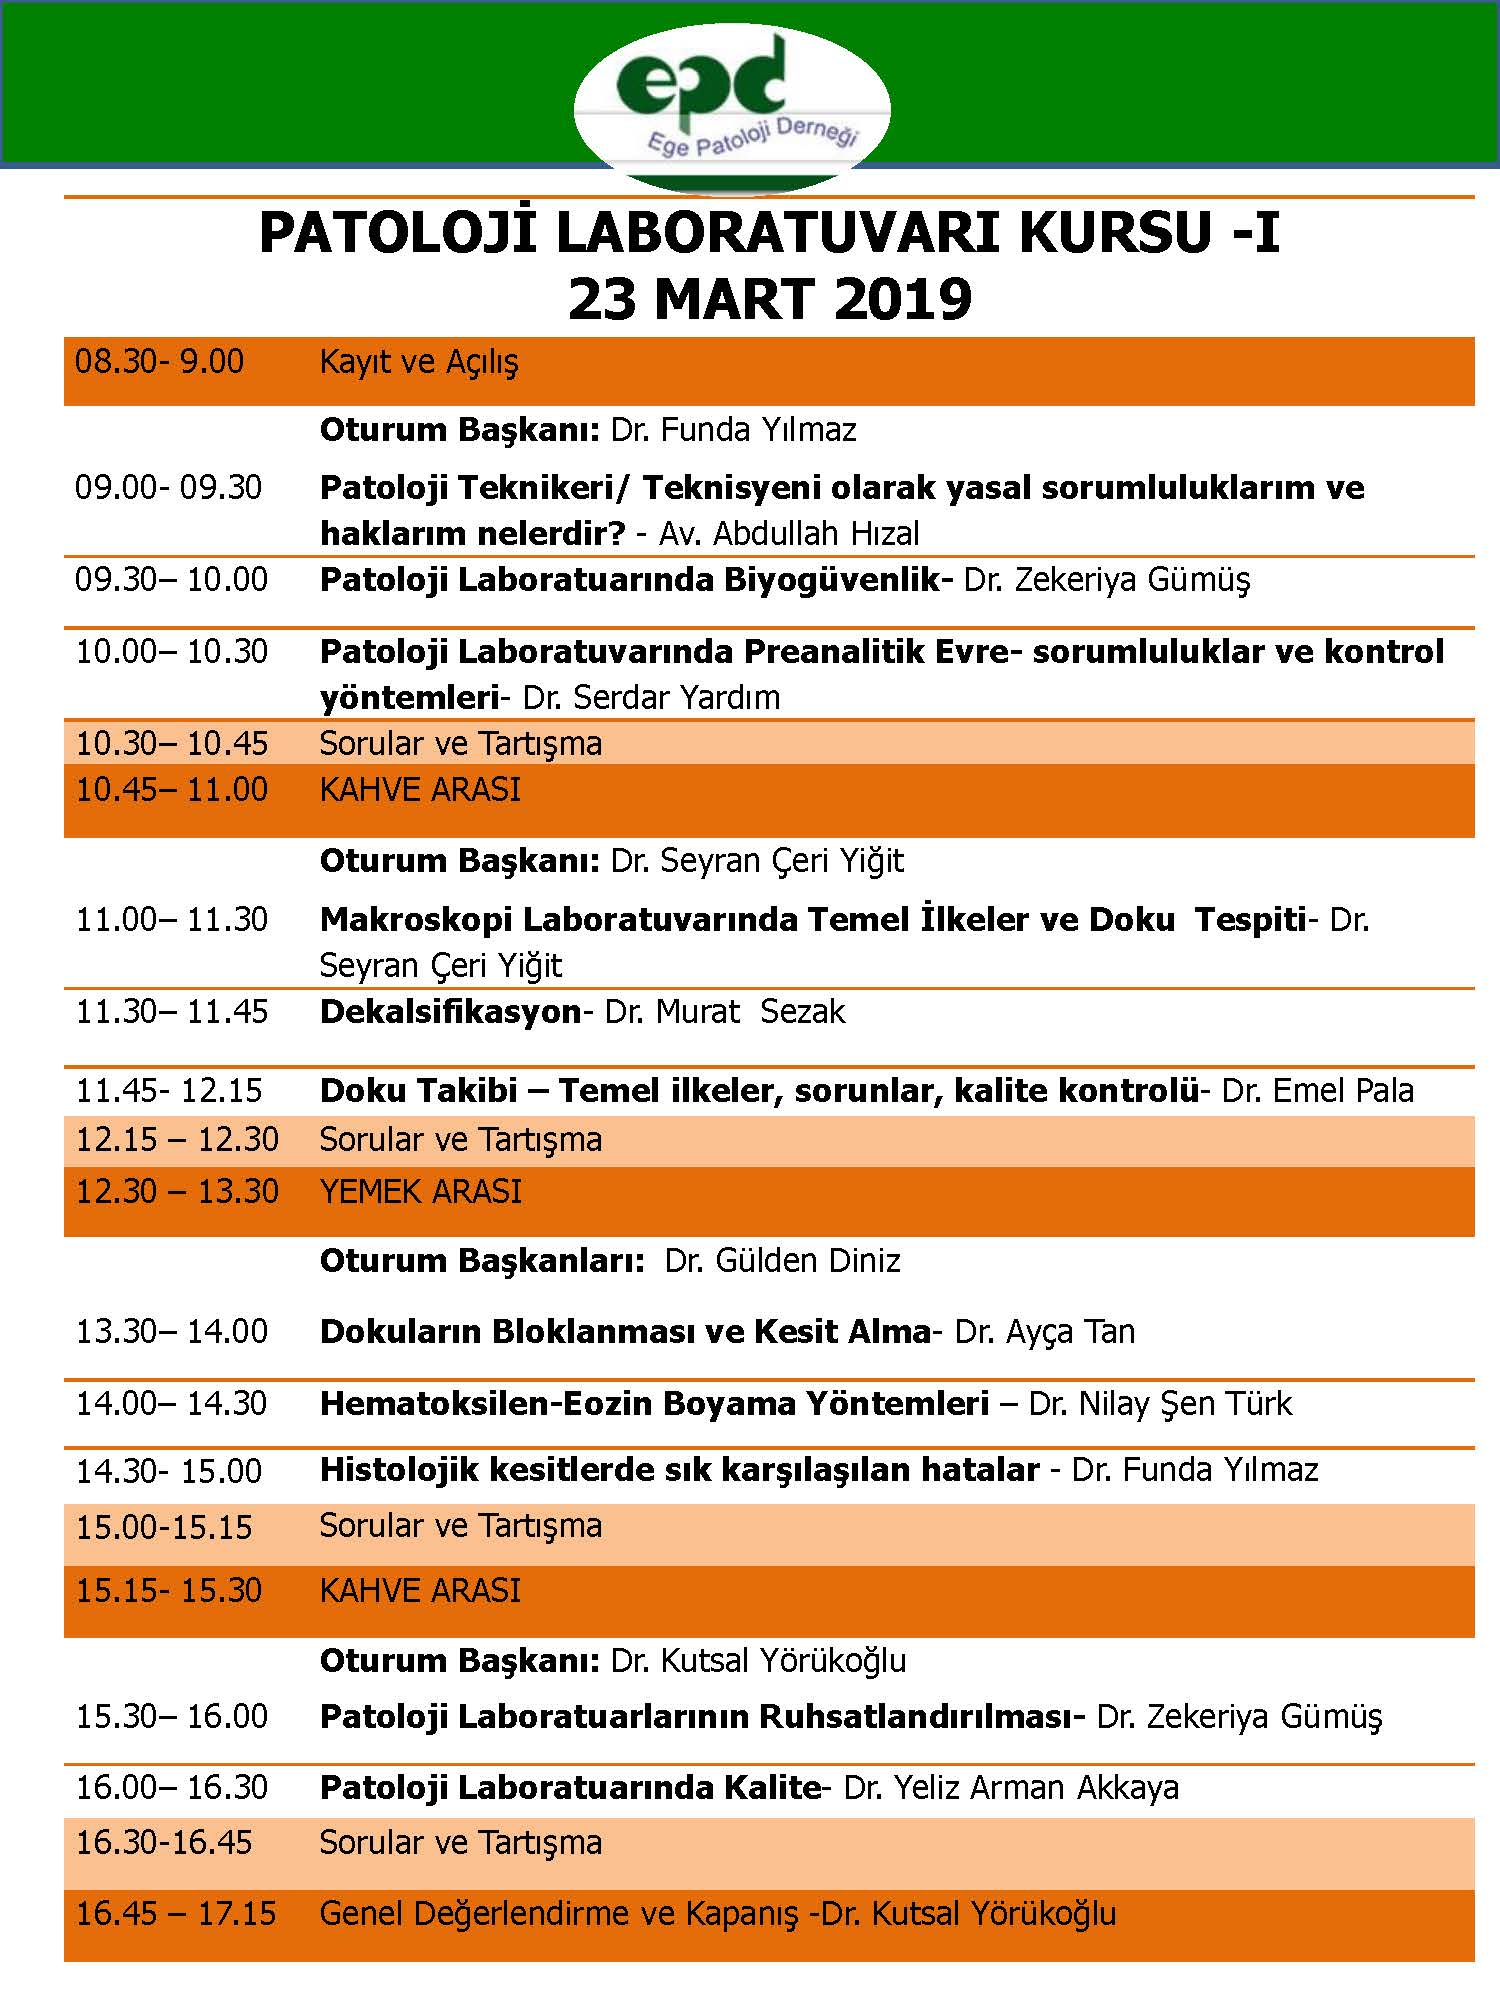 23 MART 2019 LAB KURSU PROGRAM_Page_3